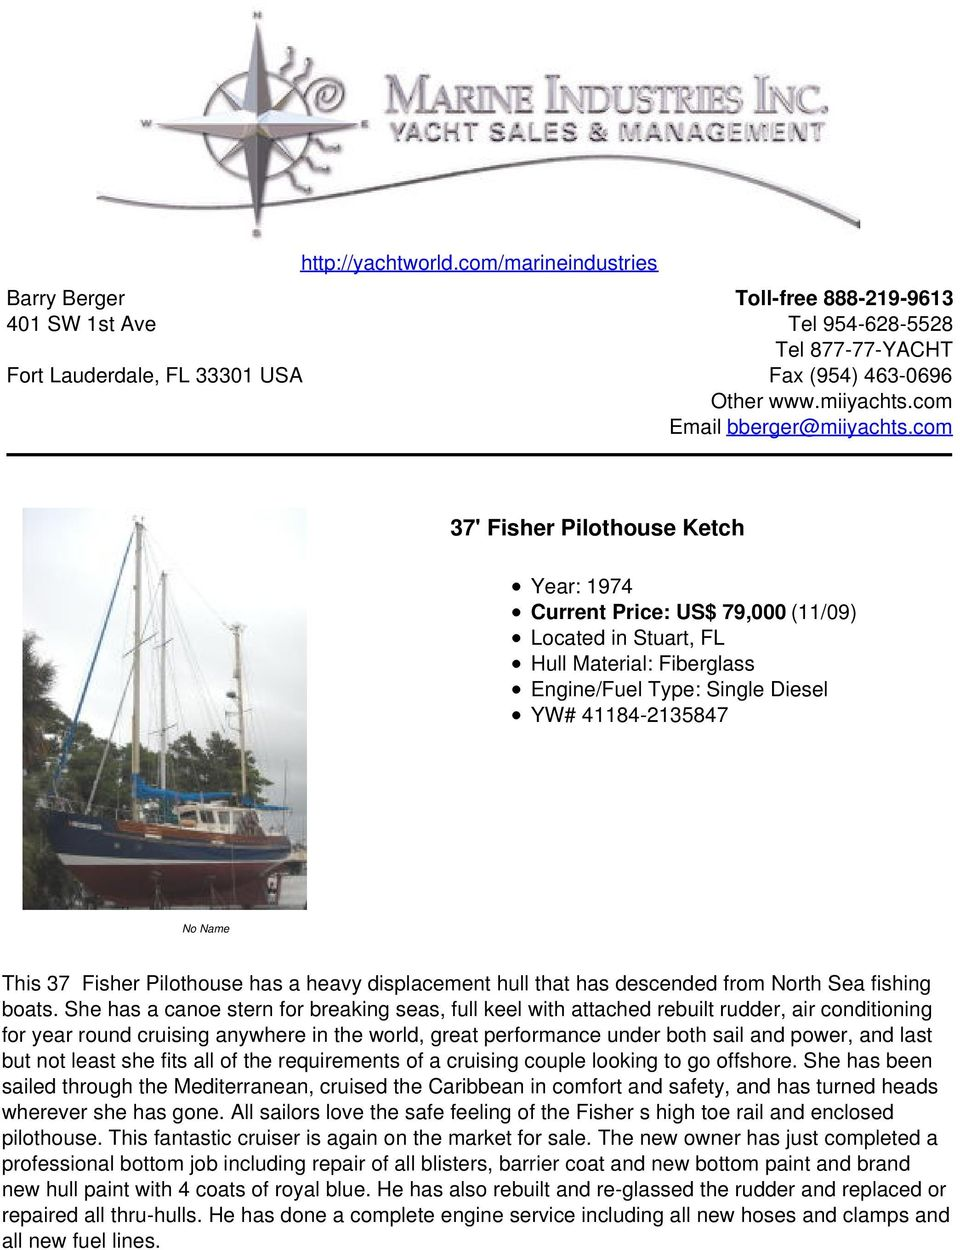 com 37' Fisher Pilothouse Ketch Year: 1974 Current Price: US$ 79,000 (11/09) Located in Stuart, FL Hull Material: Fiberglass Engine/Fuel Type: Single Diesel YW# 41184-2135847 No Name This 37 Fisher